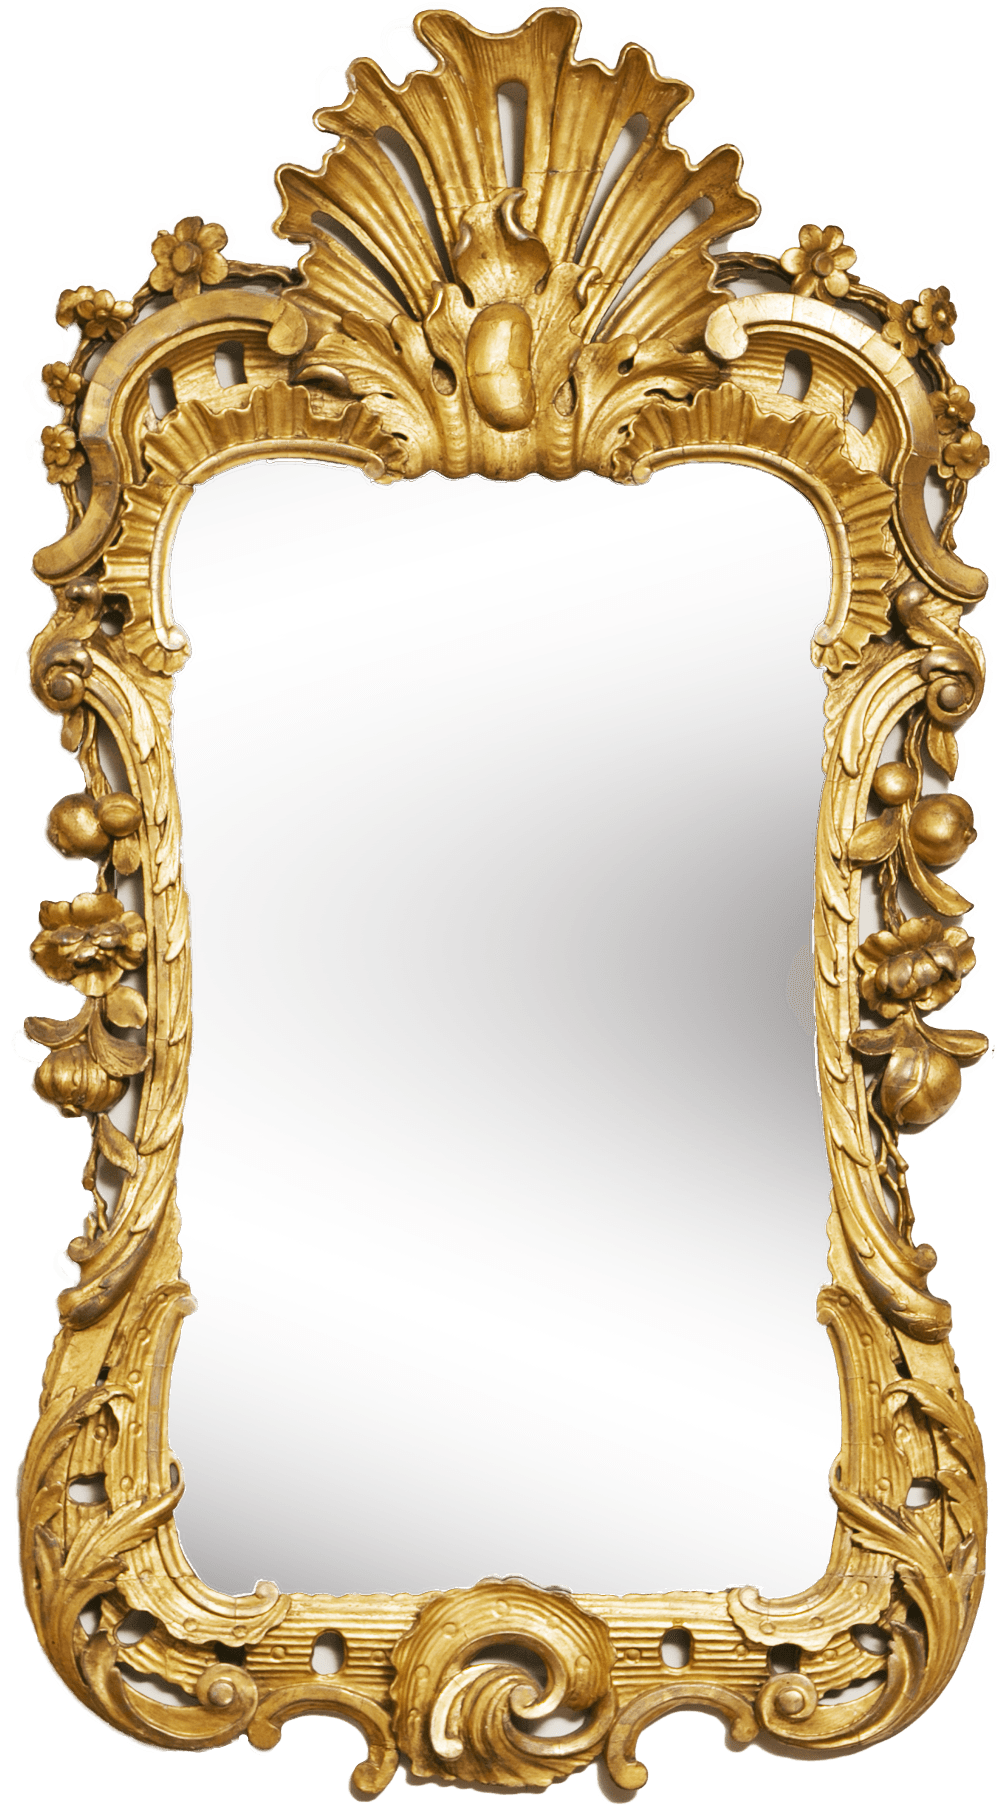 Mirror Gold Frame transparent PNG - StickPNG